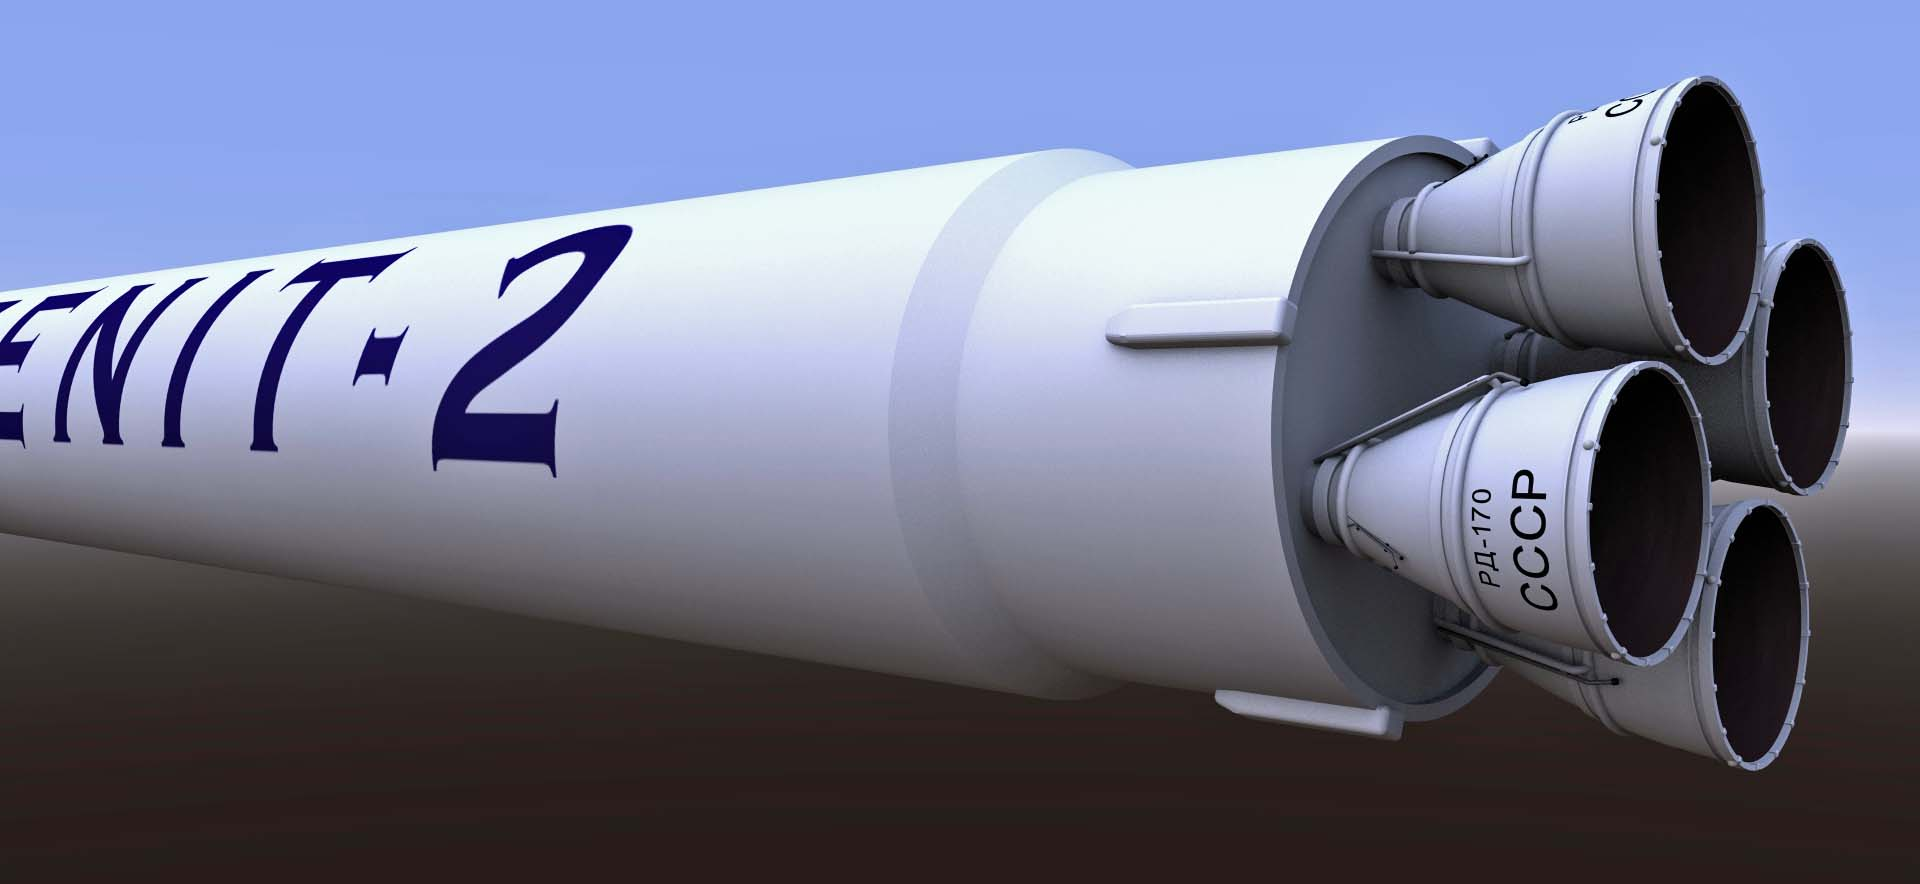 Zenit: First Renders Of The New Project, Zenit 2 Rocket